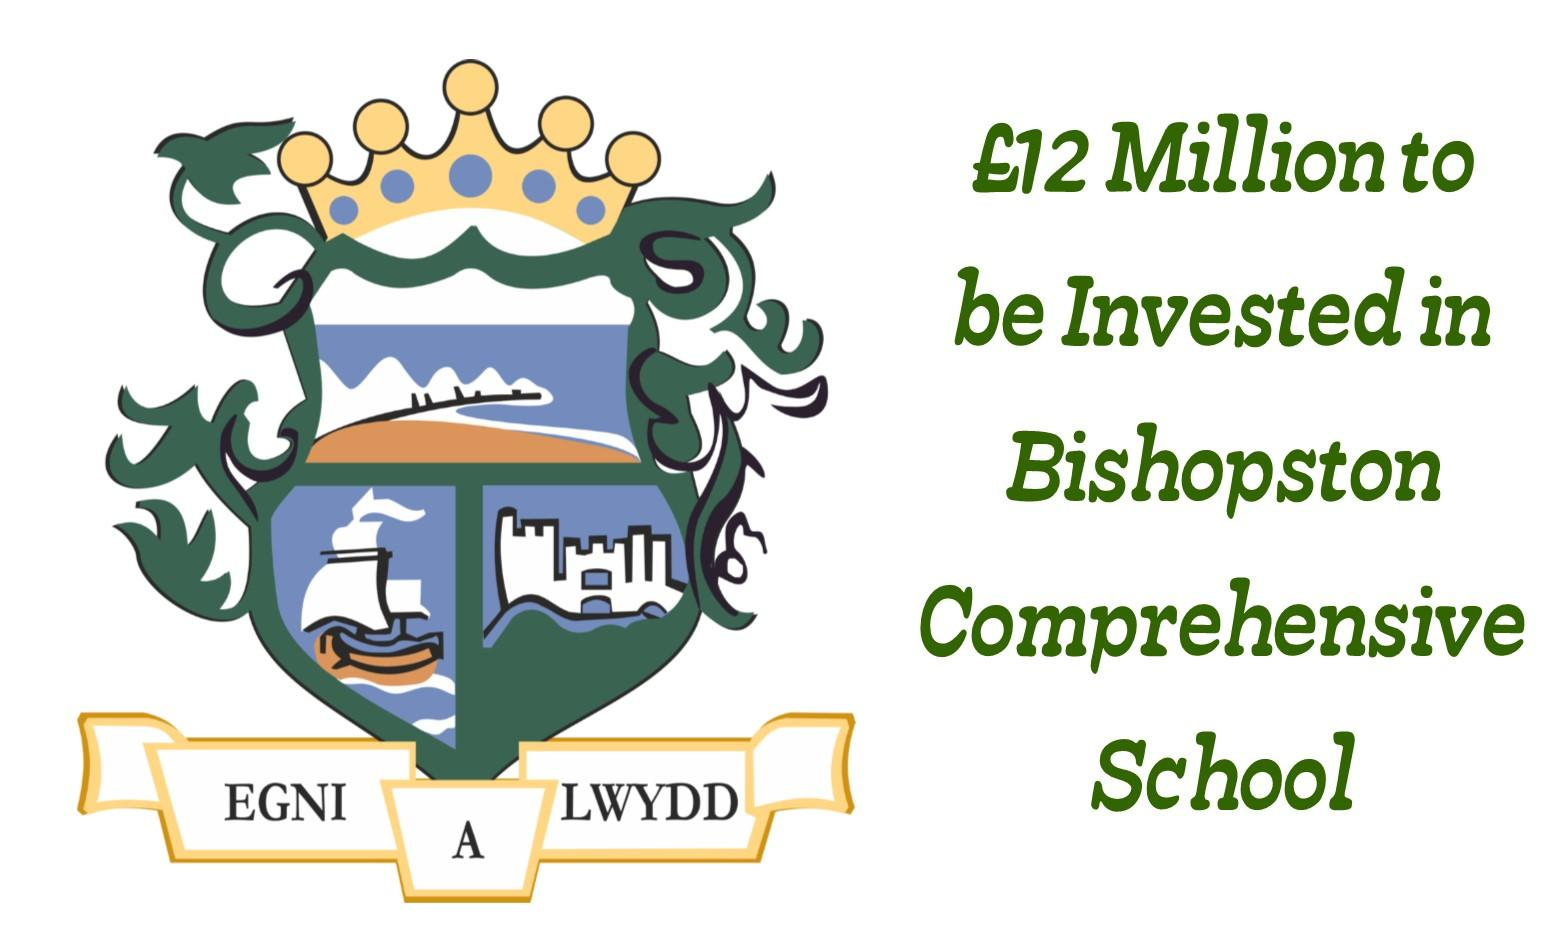 £12m to be invested in Bishopston Comprehensive School